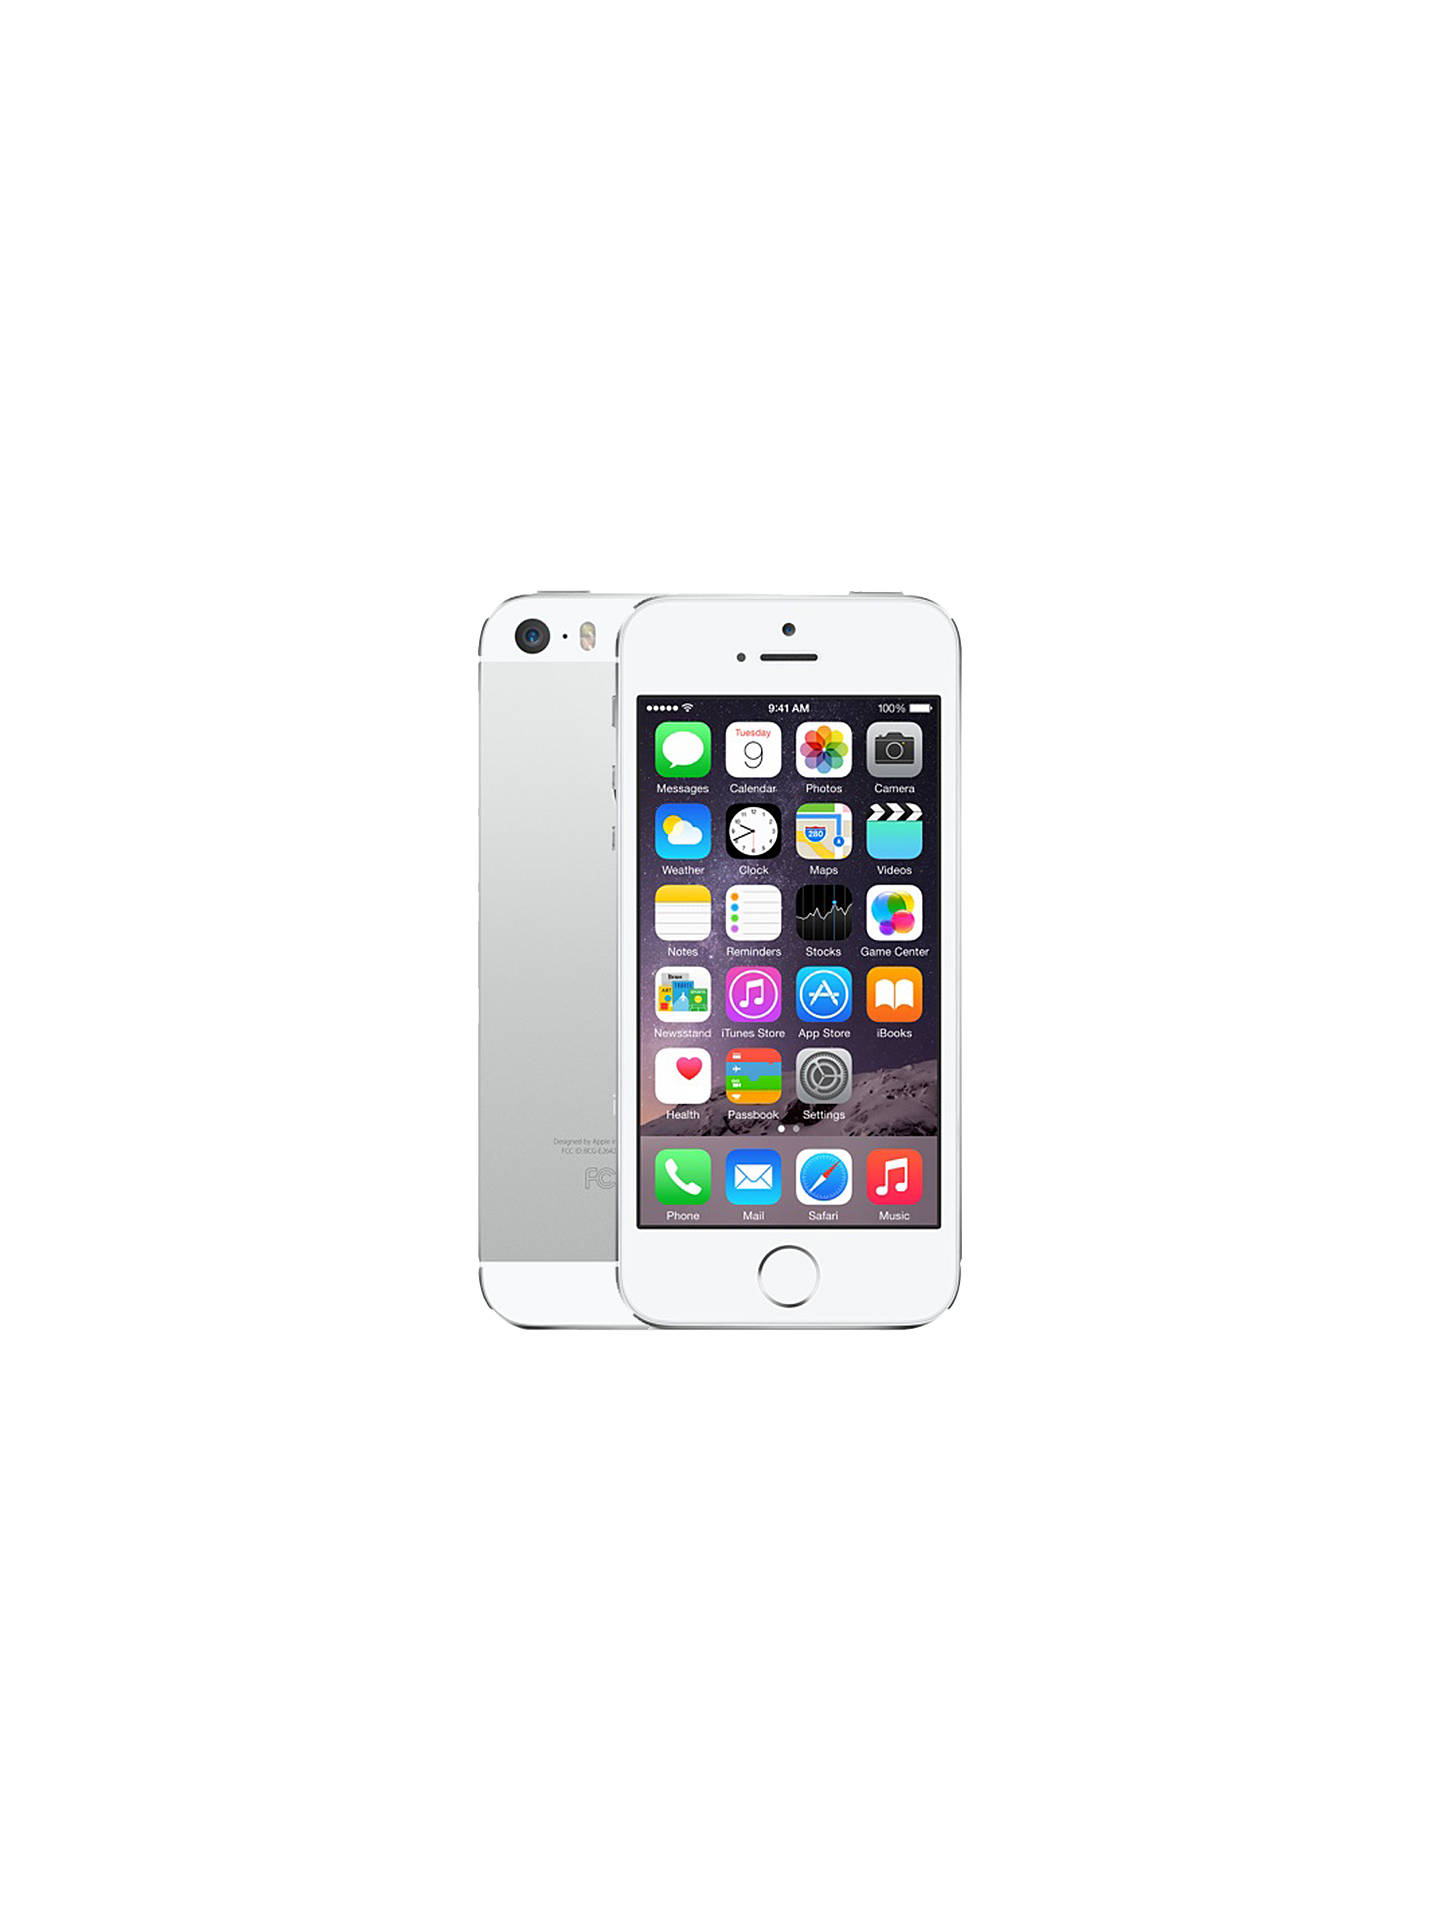 Apple Iphone 5s Ios 4 4g Lte Sim Free 16gb At John Lewis Se Grey Buyapple